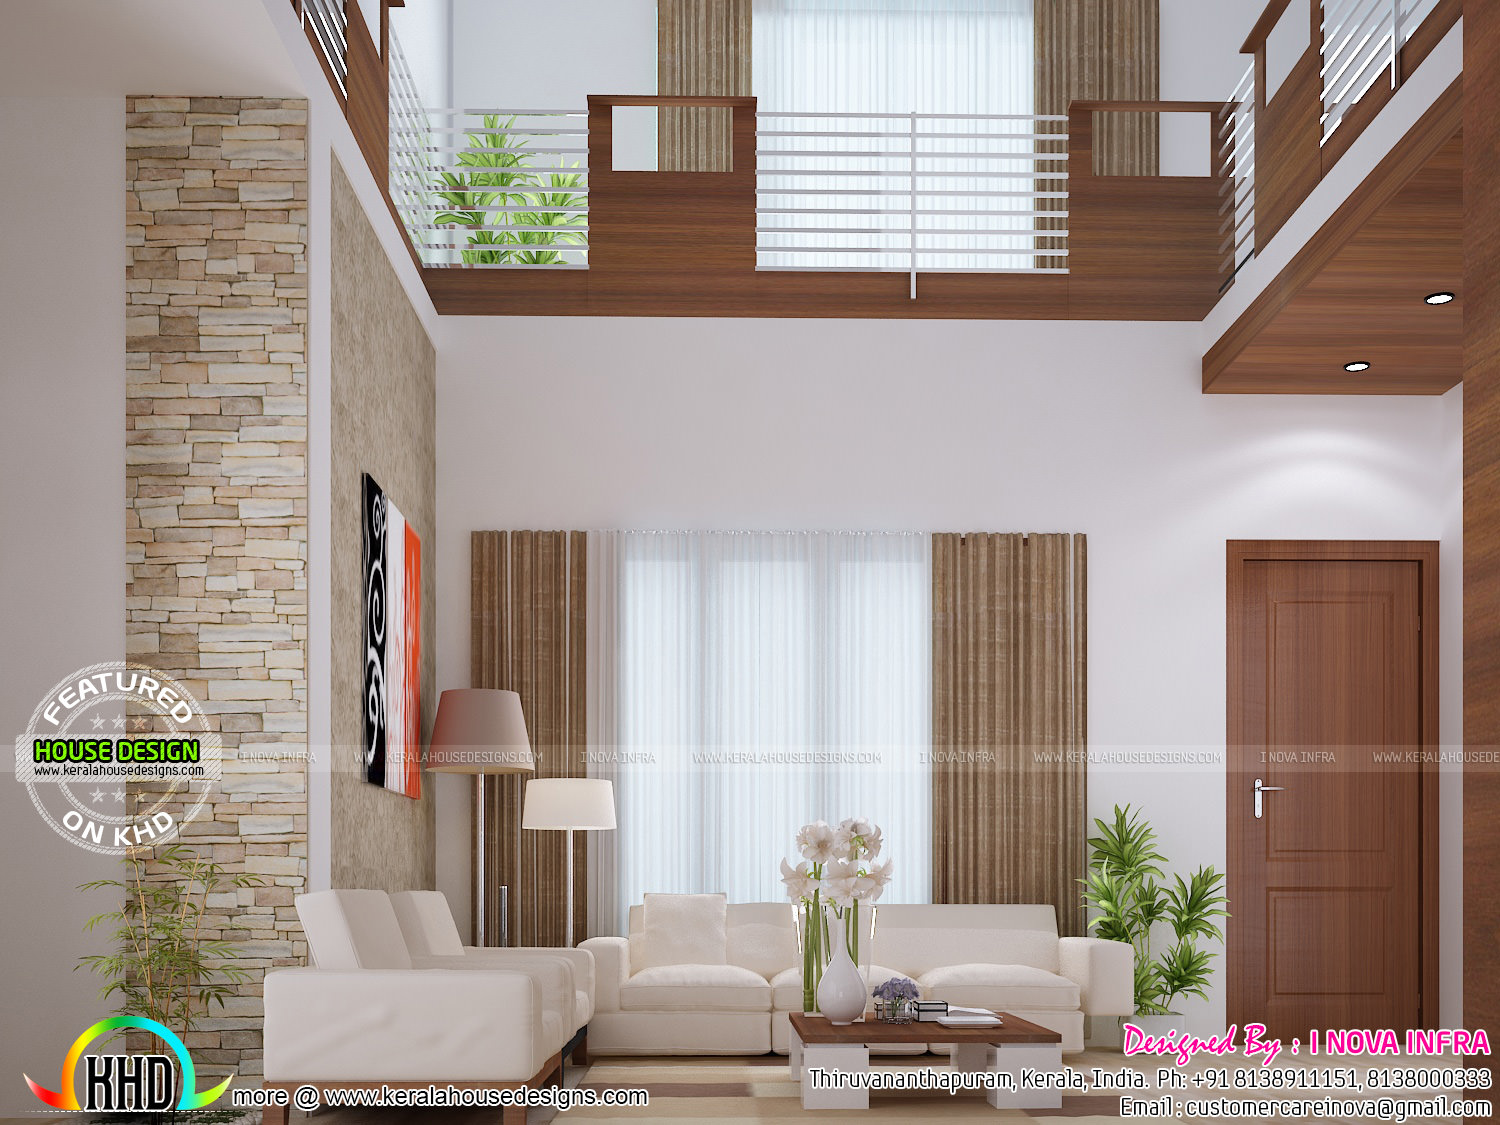 Balcony dining bedroom and staircase interior kerala for Interior design for duplex living room